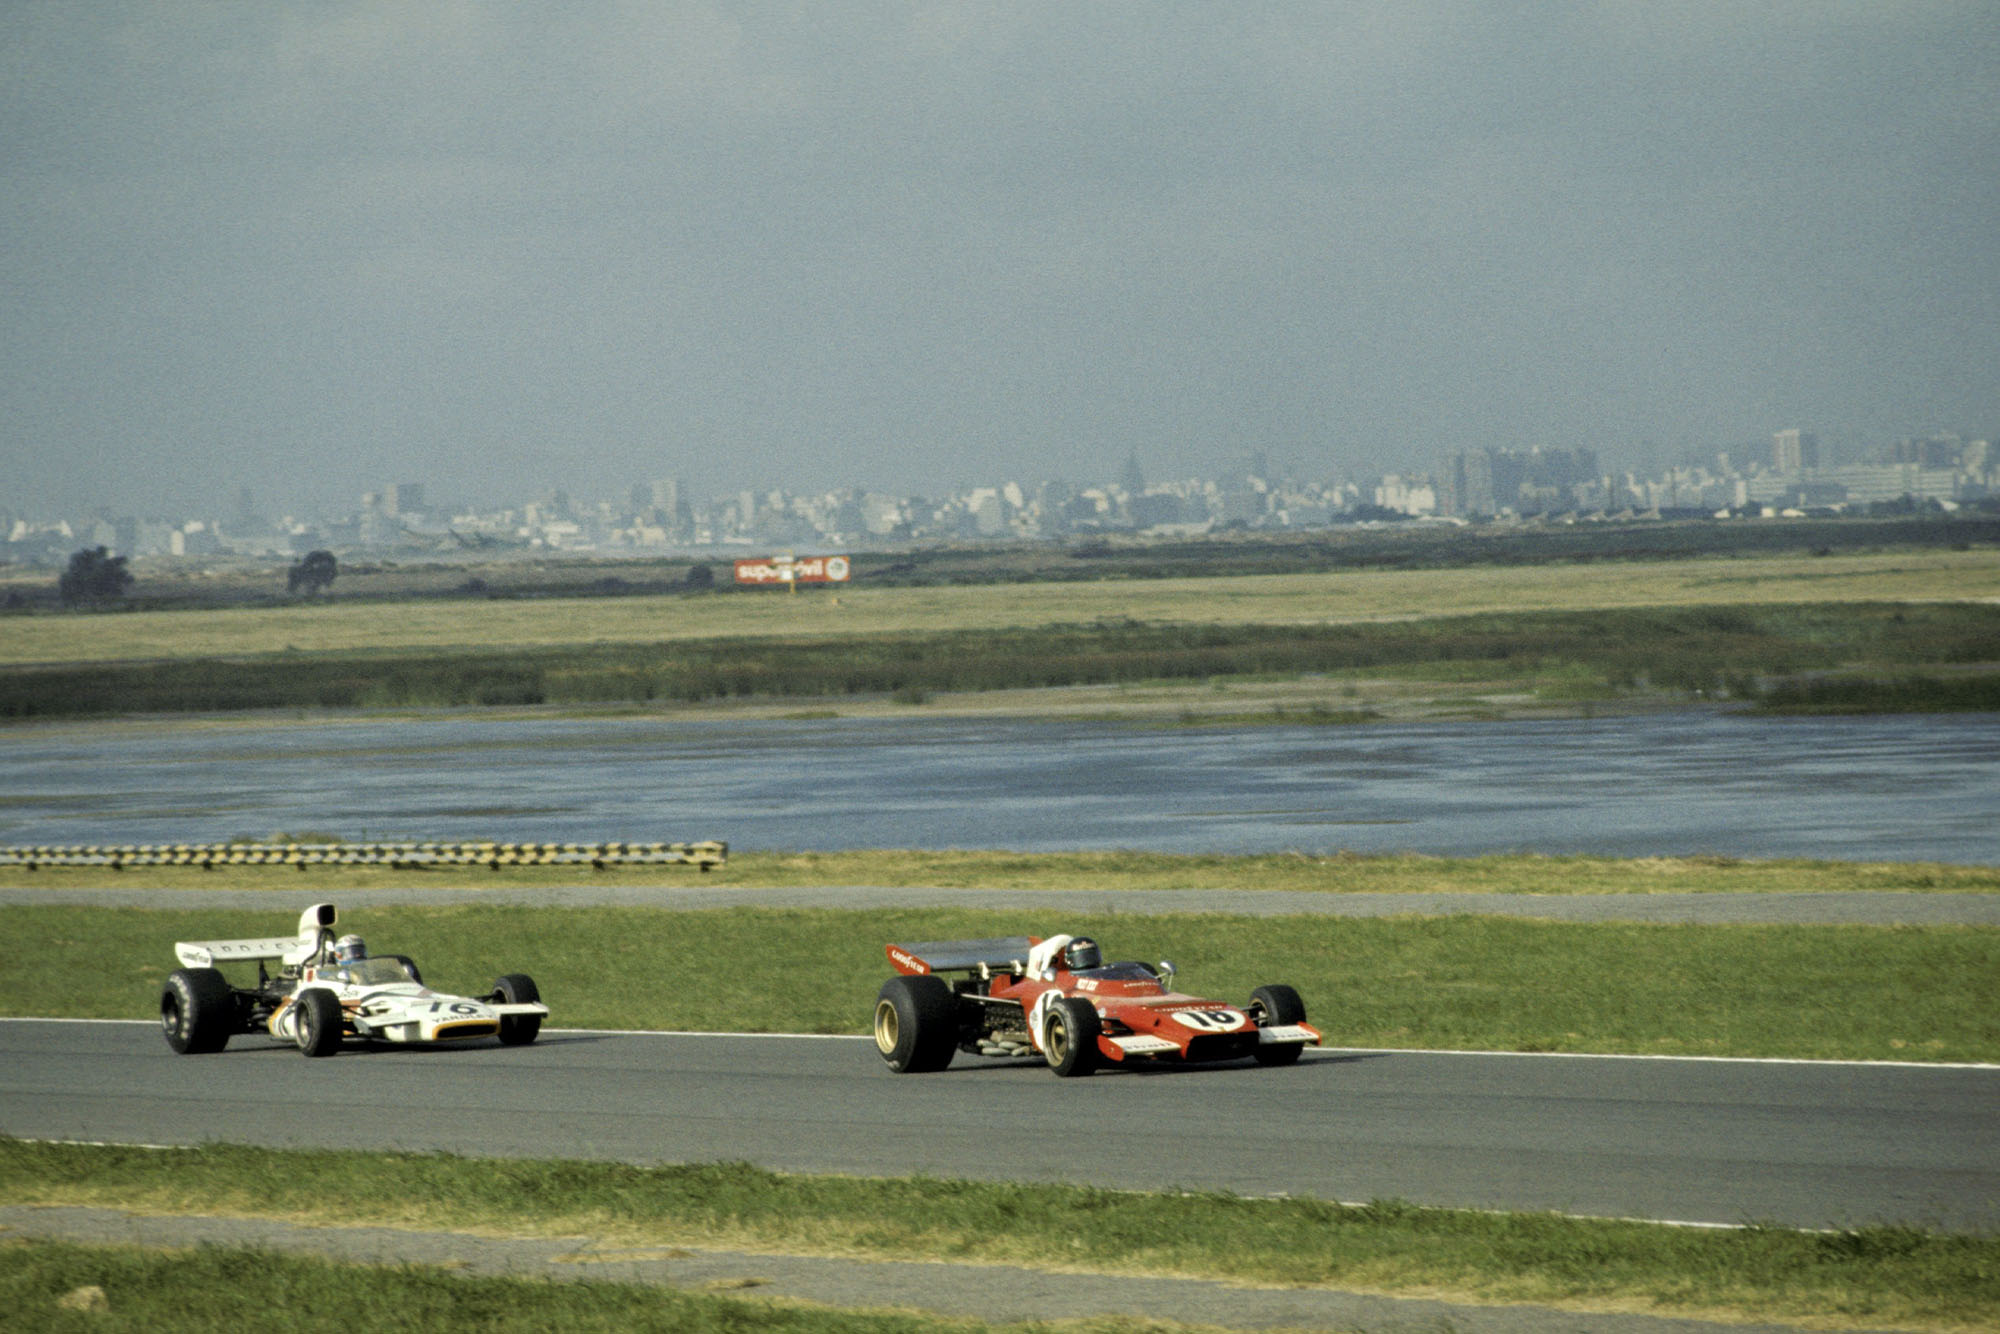 Fourth placed Jacky Ickx (BEL) Ferrari 312B2 leads Peter Revson (USA) McLaren M19C who finished eighth.